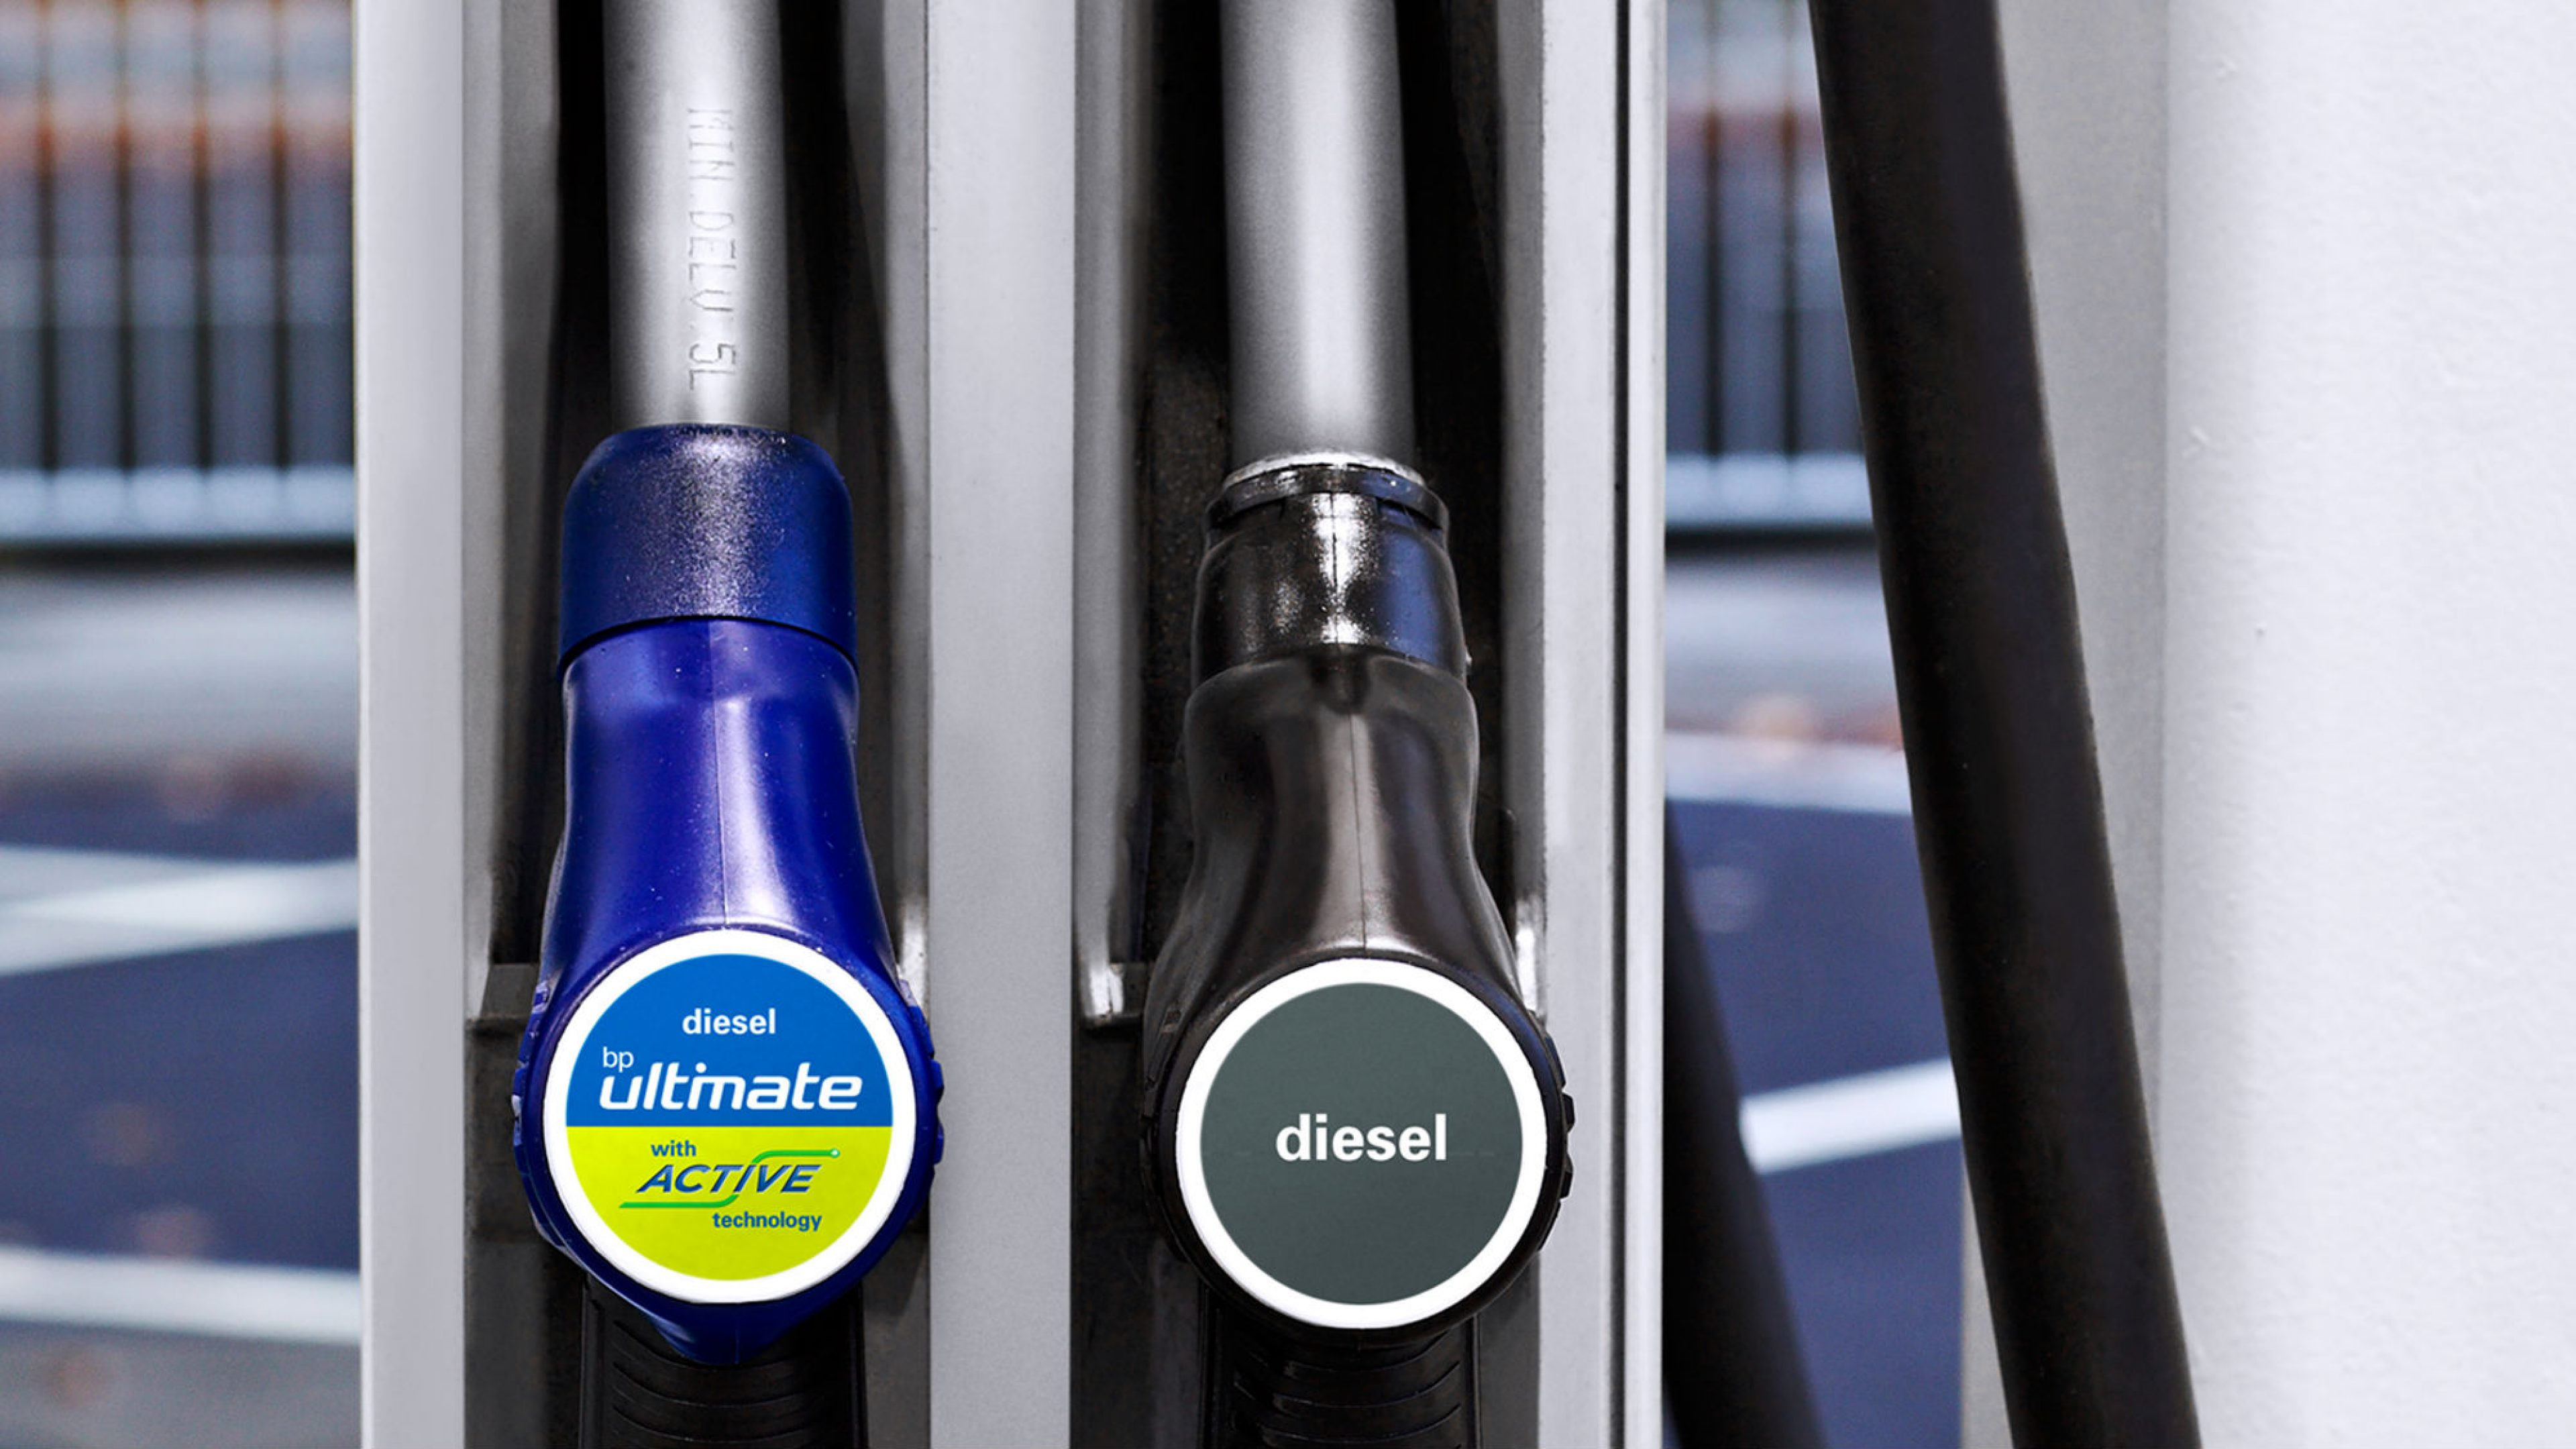 New BP diesel fuels with Active technology contain an army of dirt busting molecules designed to protect your engine from different types of dirt